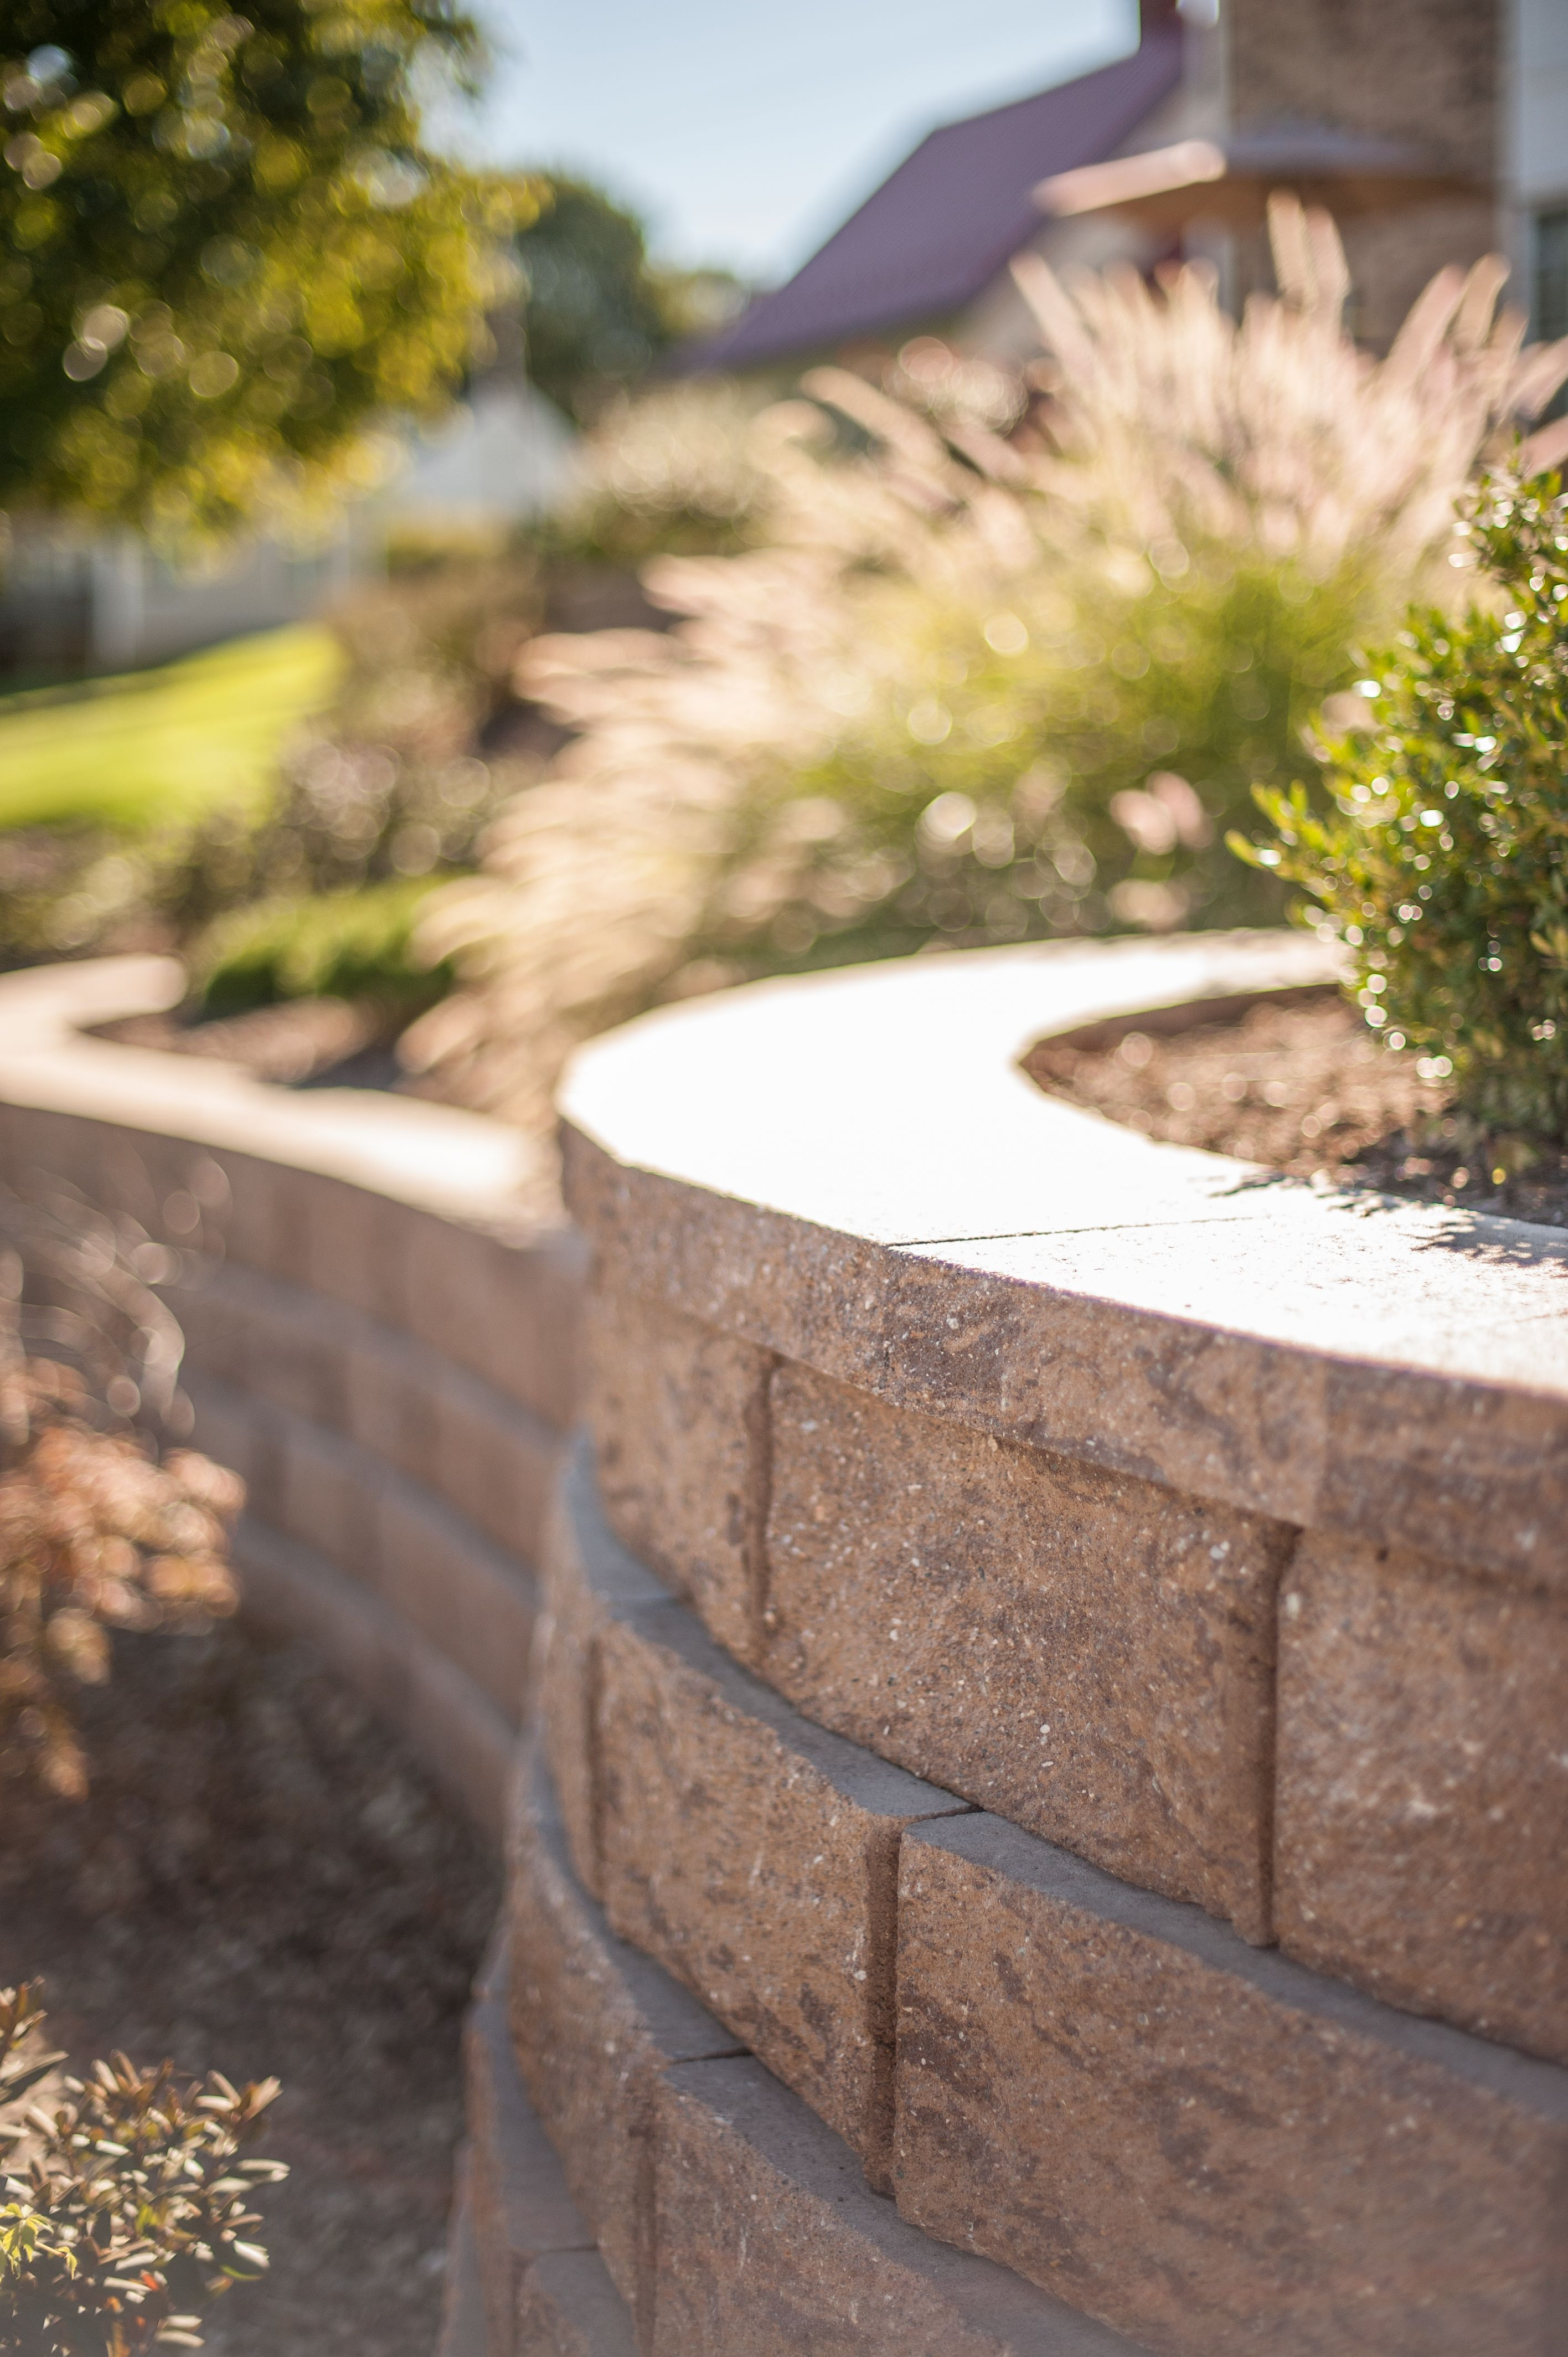 Retaining Walls Are Perfect For Flower Beds And Holding Back Hillsides Hardscape Concrete Paver Patio Free Standing Wall